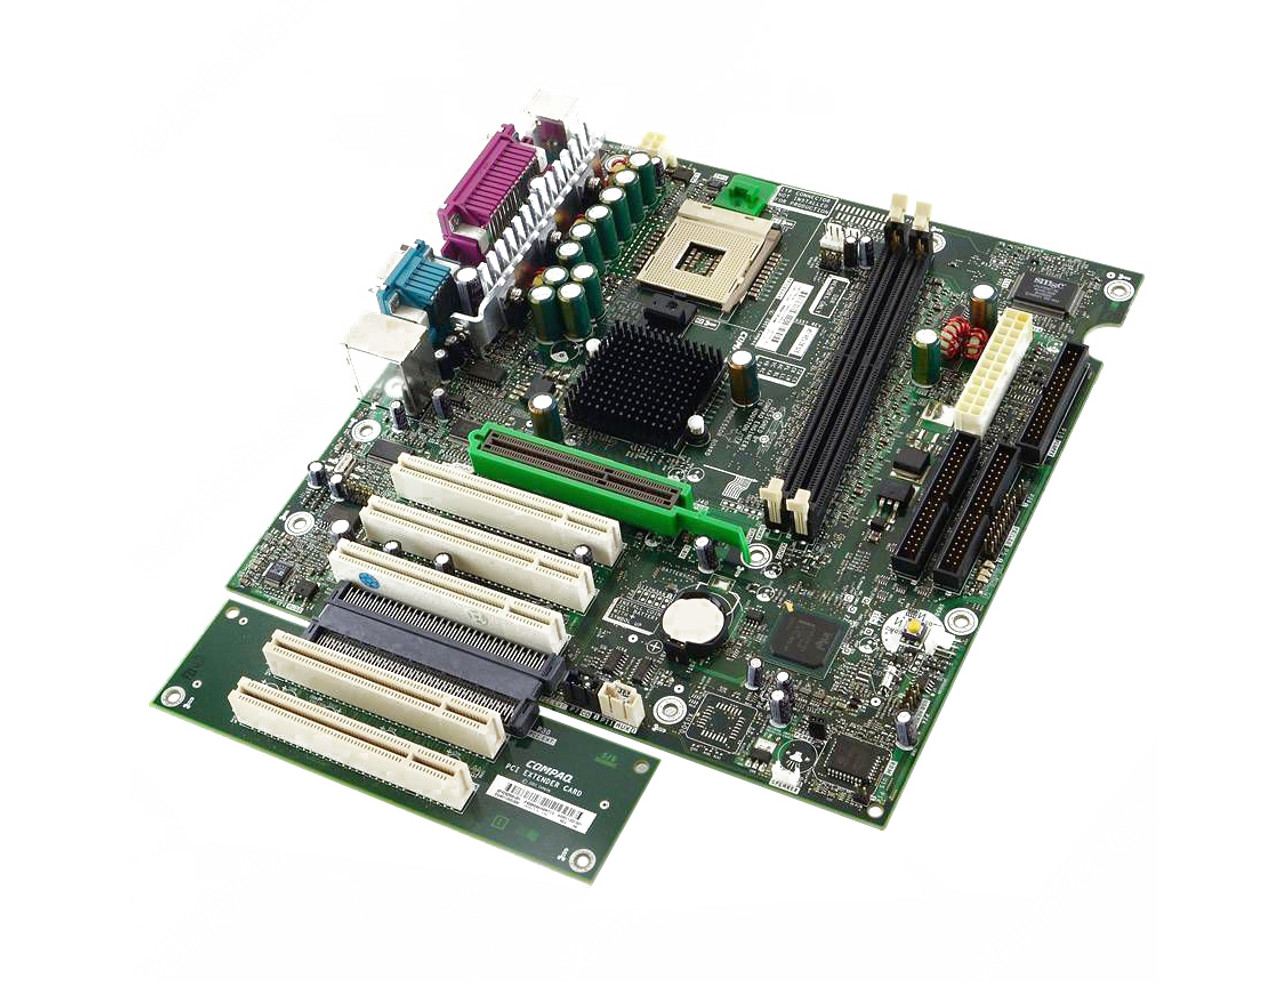 409647-001 - HP System Board (MotherBoard) NOCONA Dual Processor 800Mhz FSB  Socket-604-Pins for XW8200 Workstation